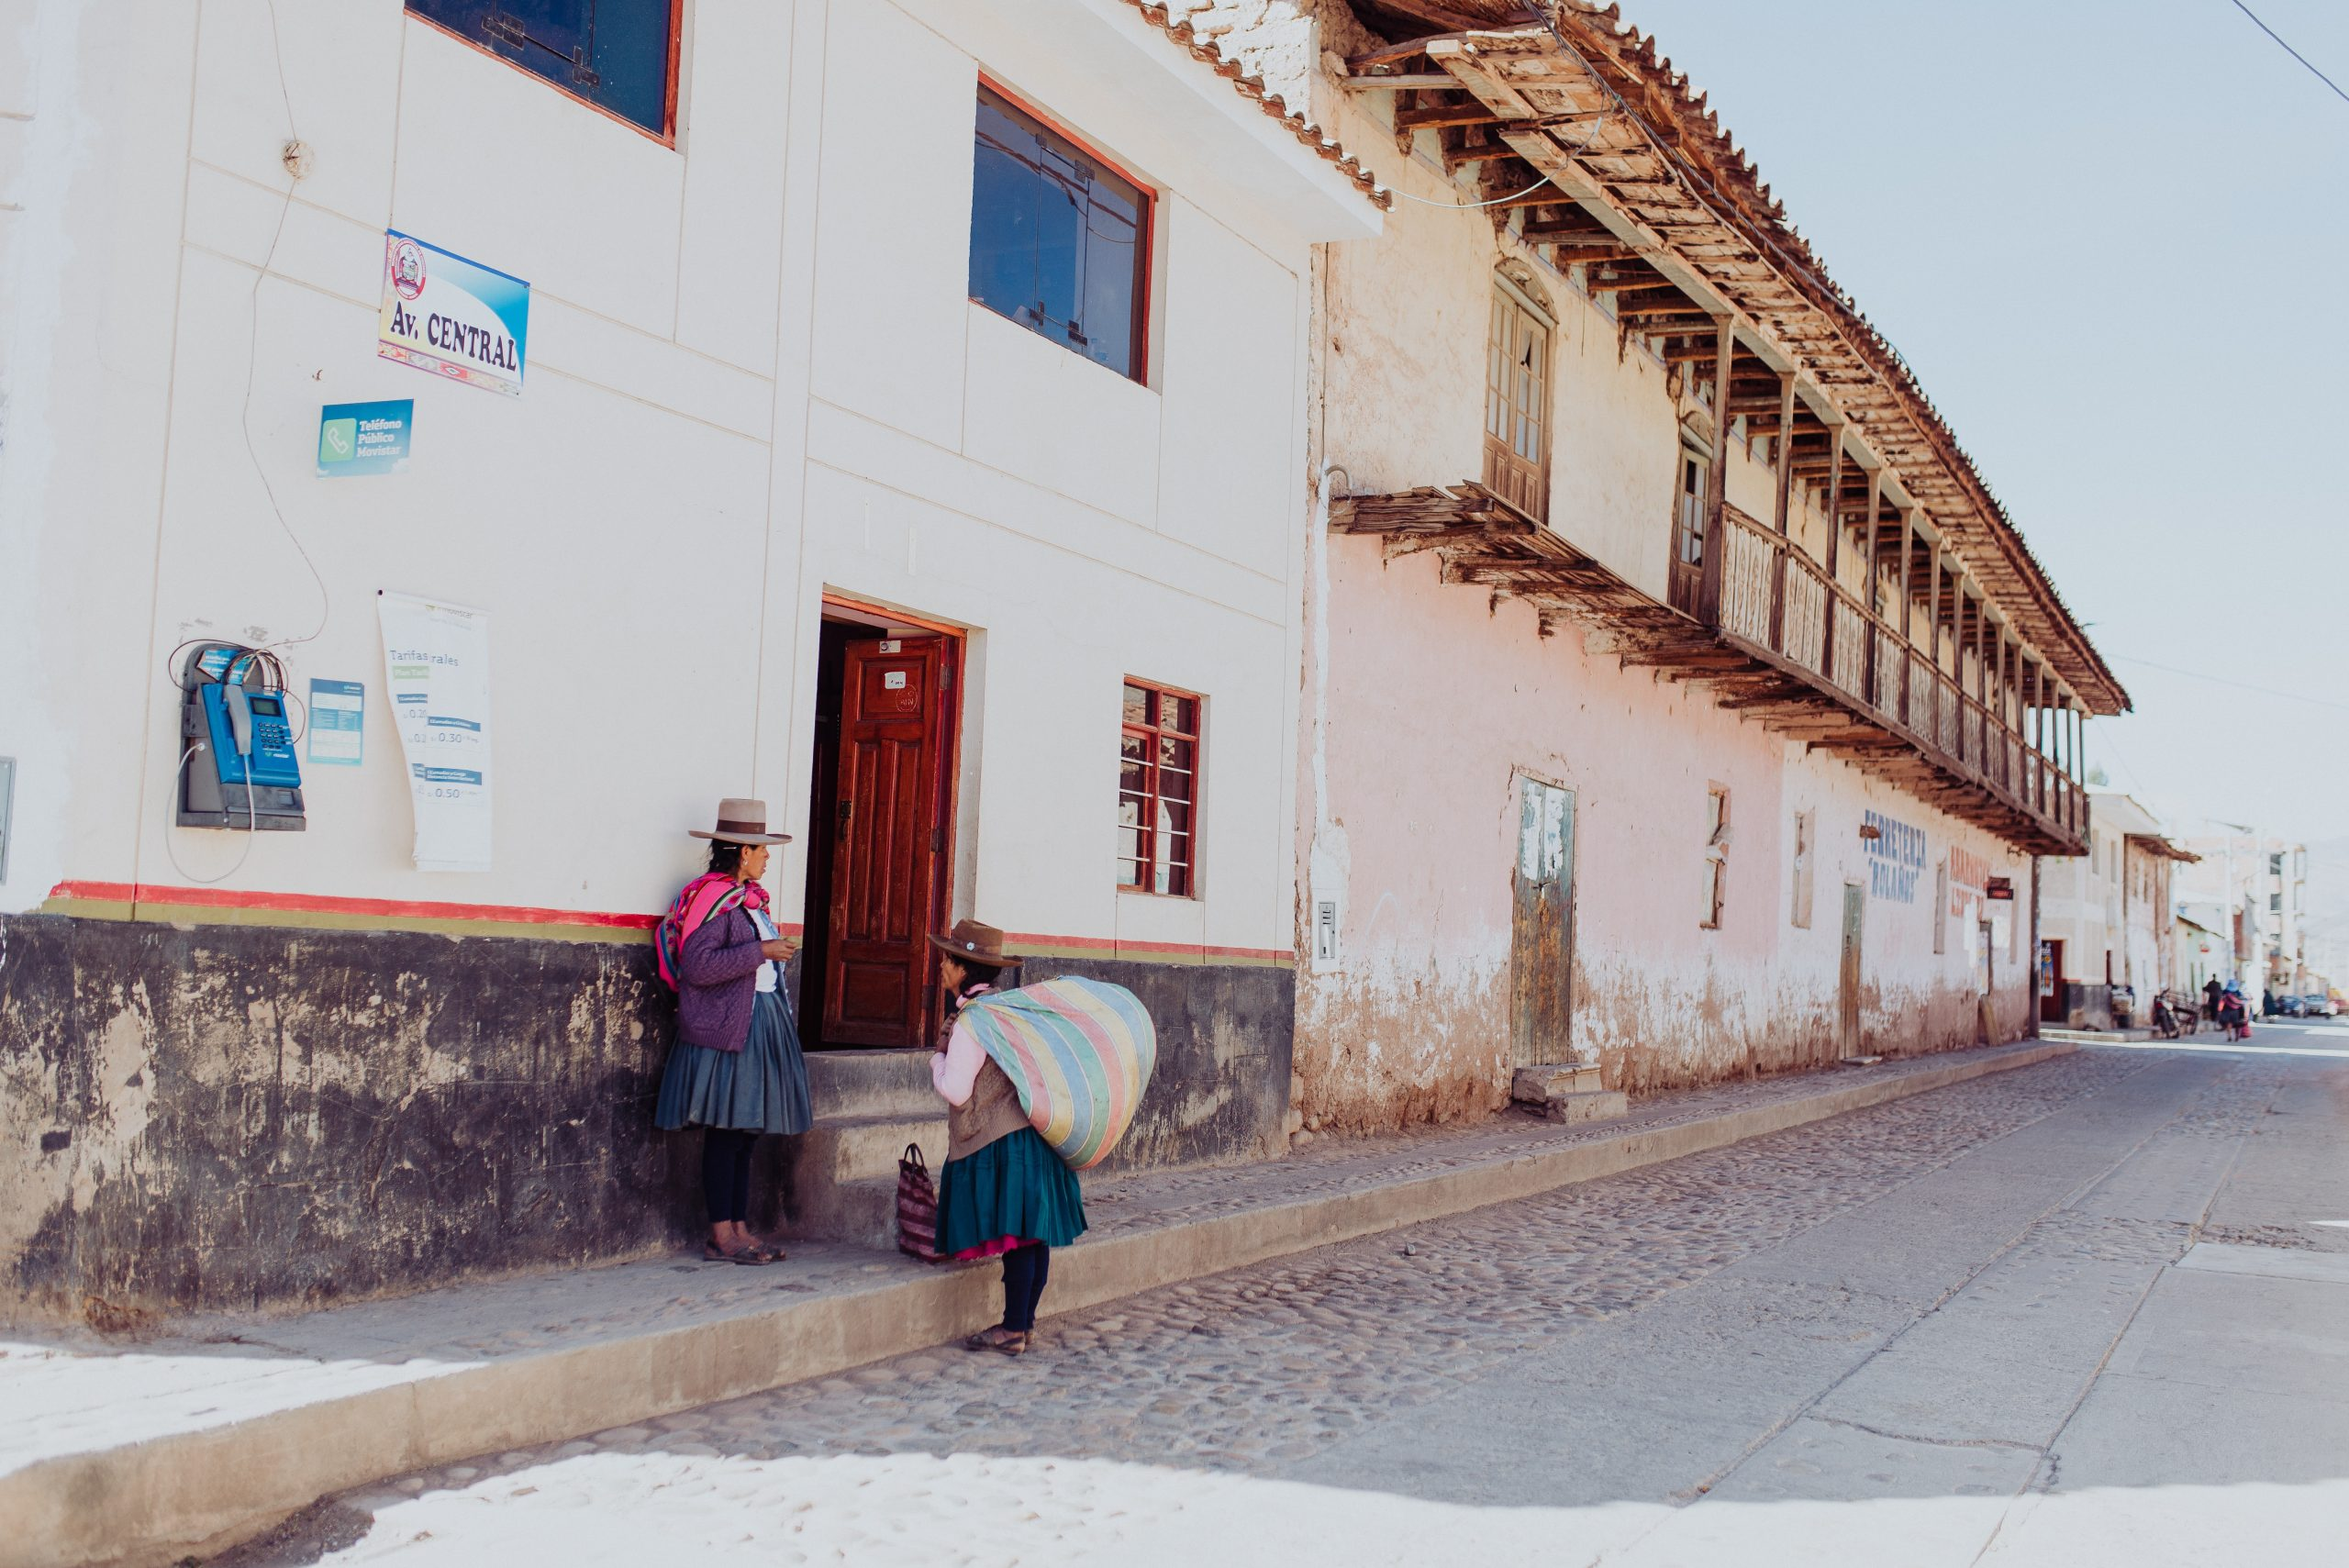 Long shot of two women of the Andes region of Peru meeting on a street, holding large bags on their back.